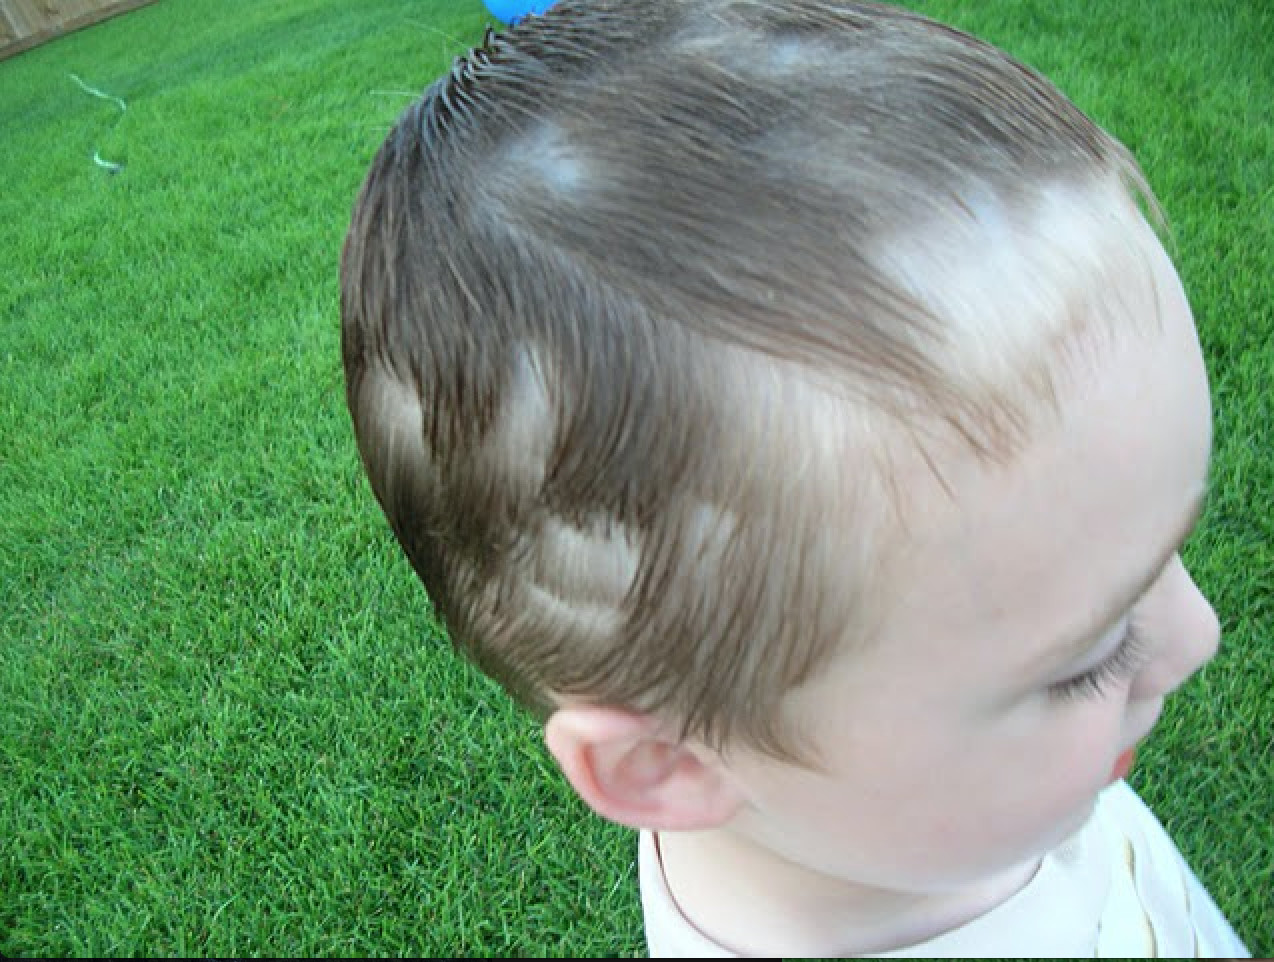 Best ideas about Kids Cut Hair . Save or Pin 20 Times Kids Failed Miserably At Cutting Their Own Hair Now.